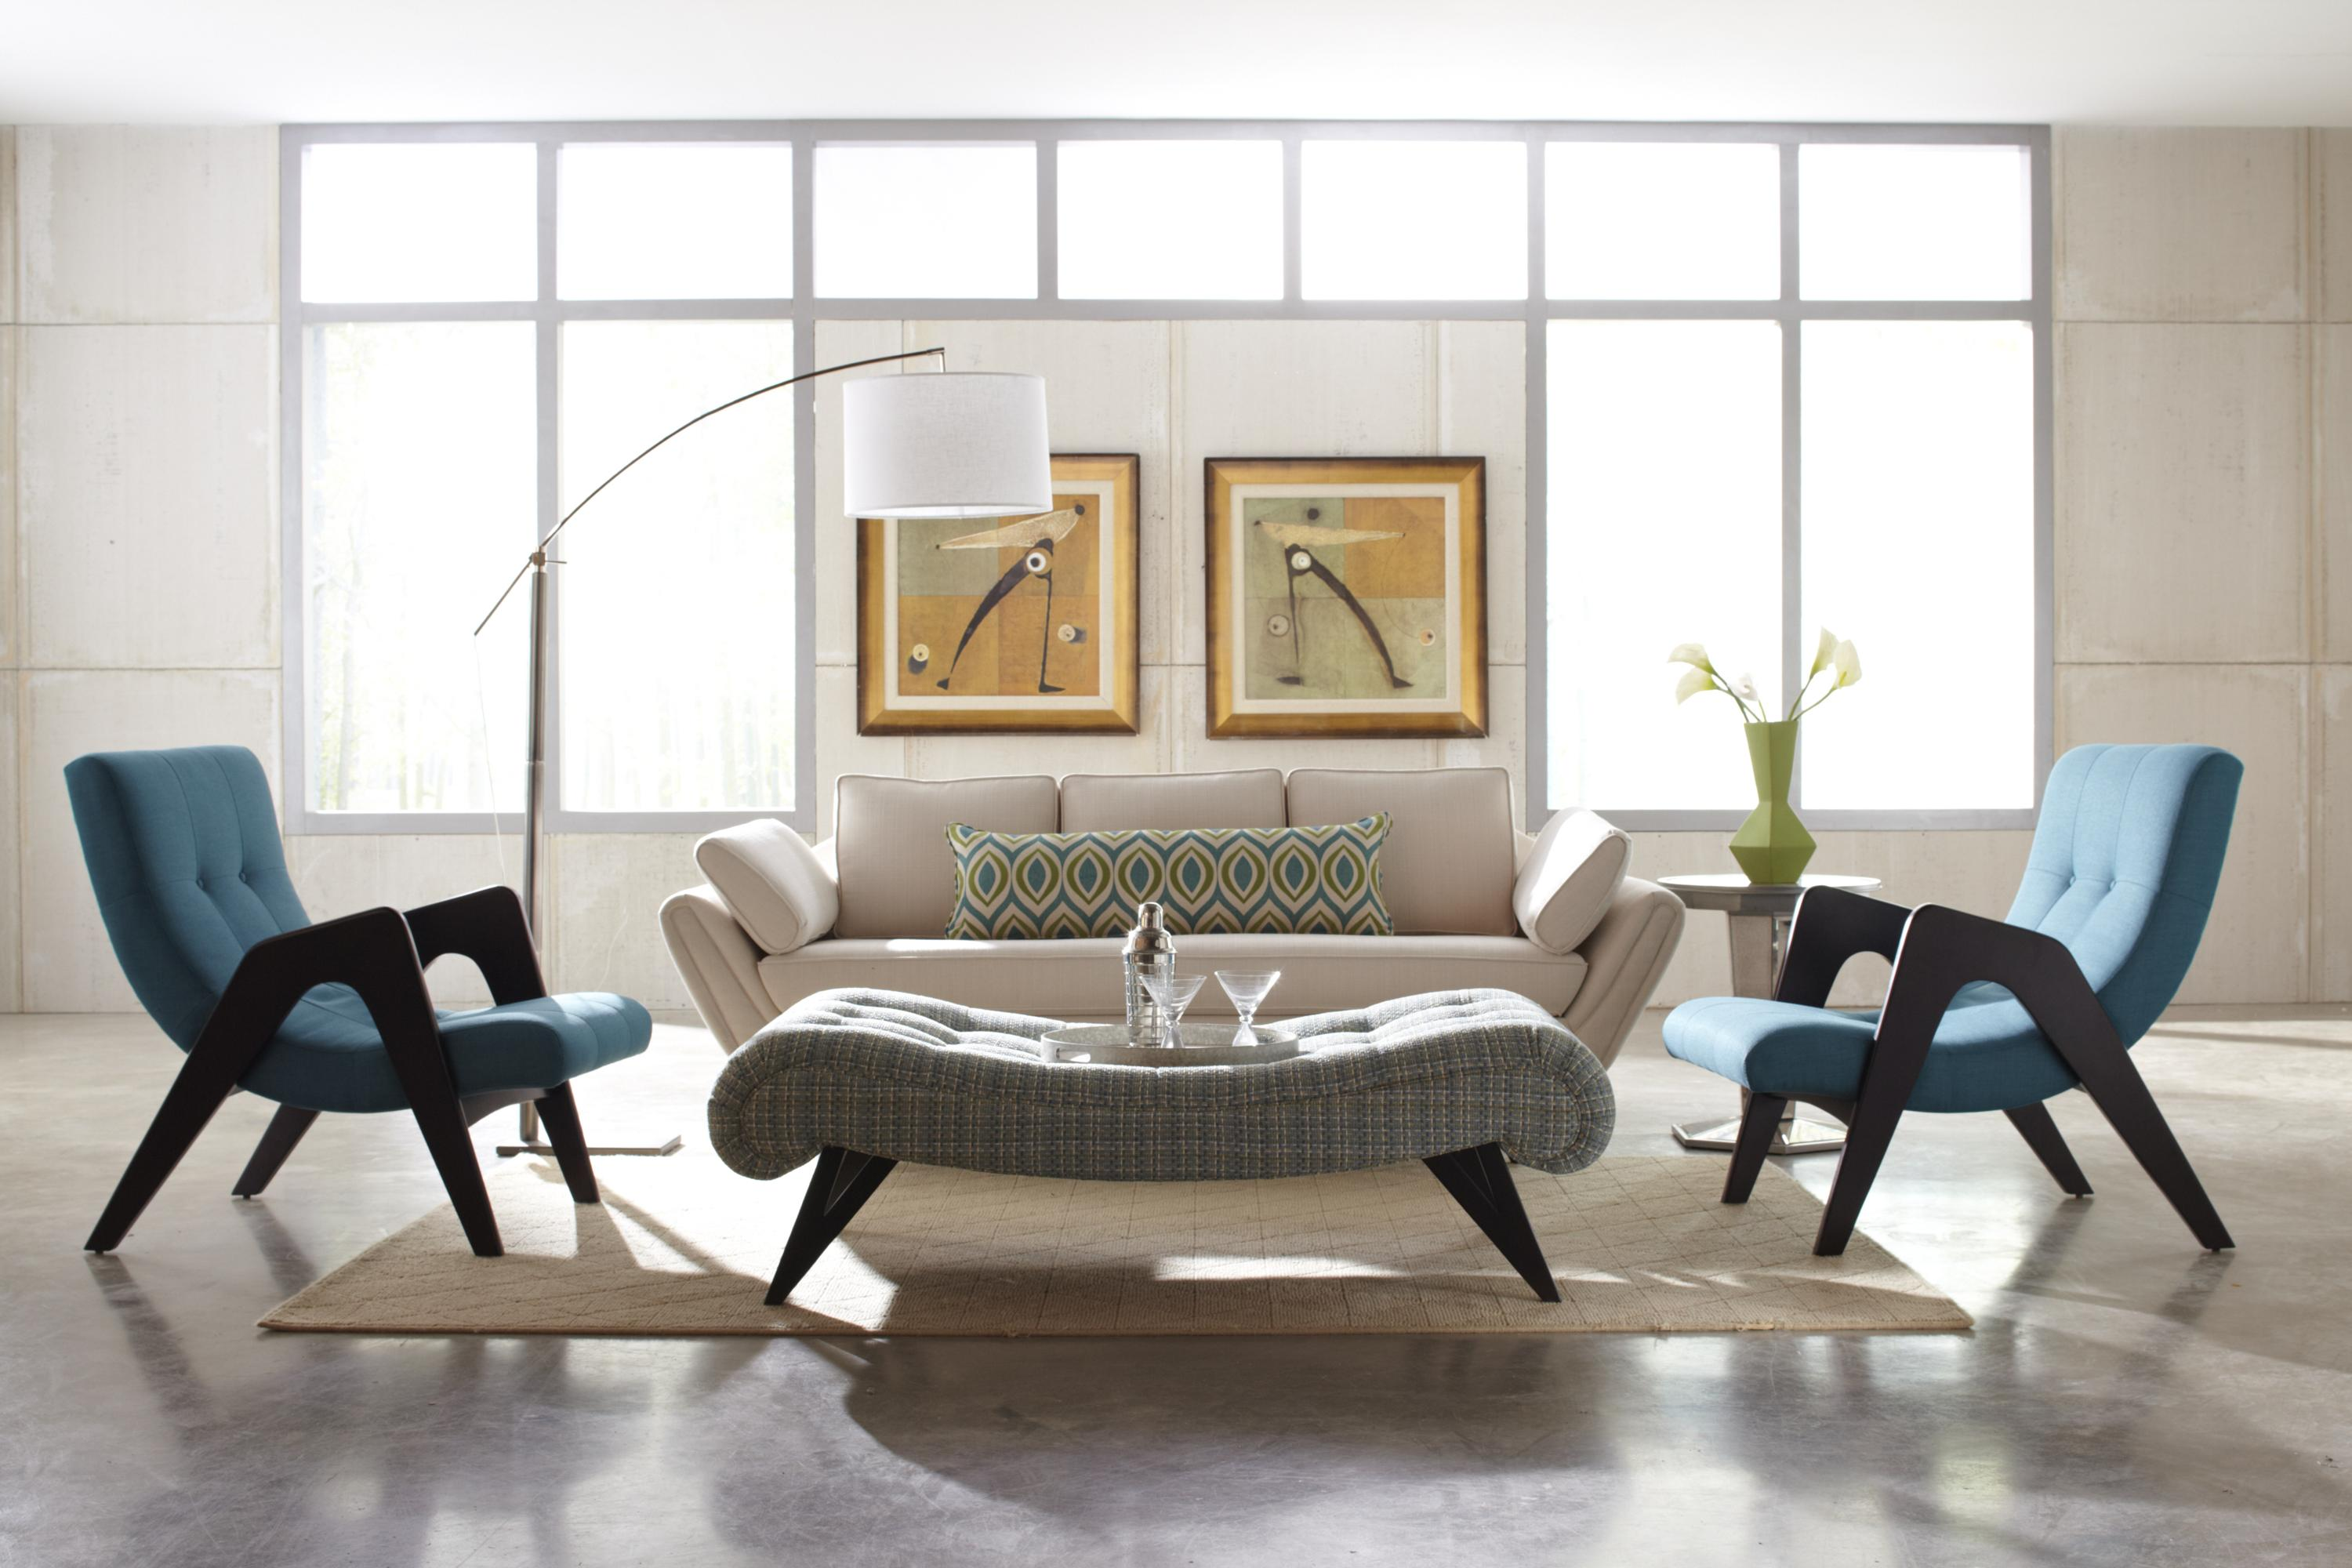 modern living room chairs cheap buy furniture online design beautiful front furnishings for incredible ideas with outlet